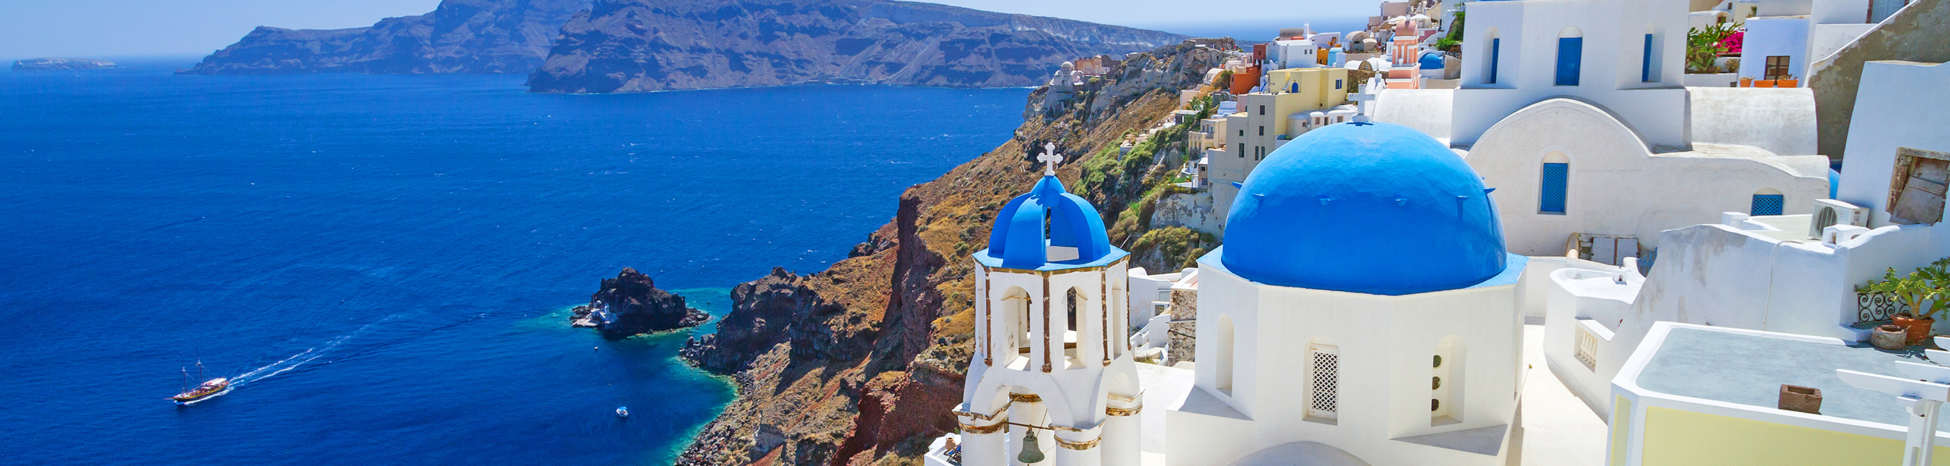 Greece-Santorini-blue-churches-view_shutterstock_132953783